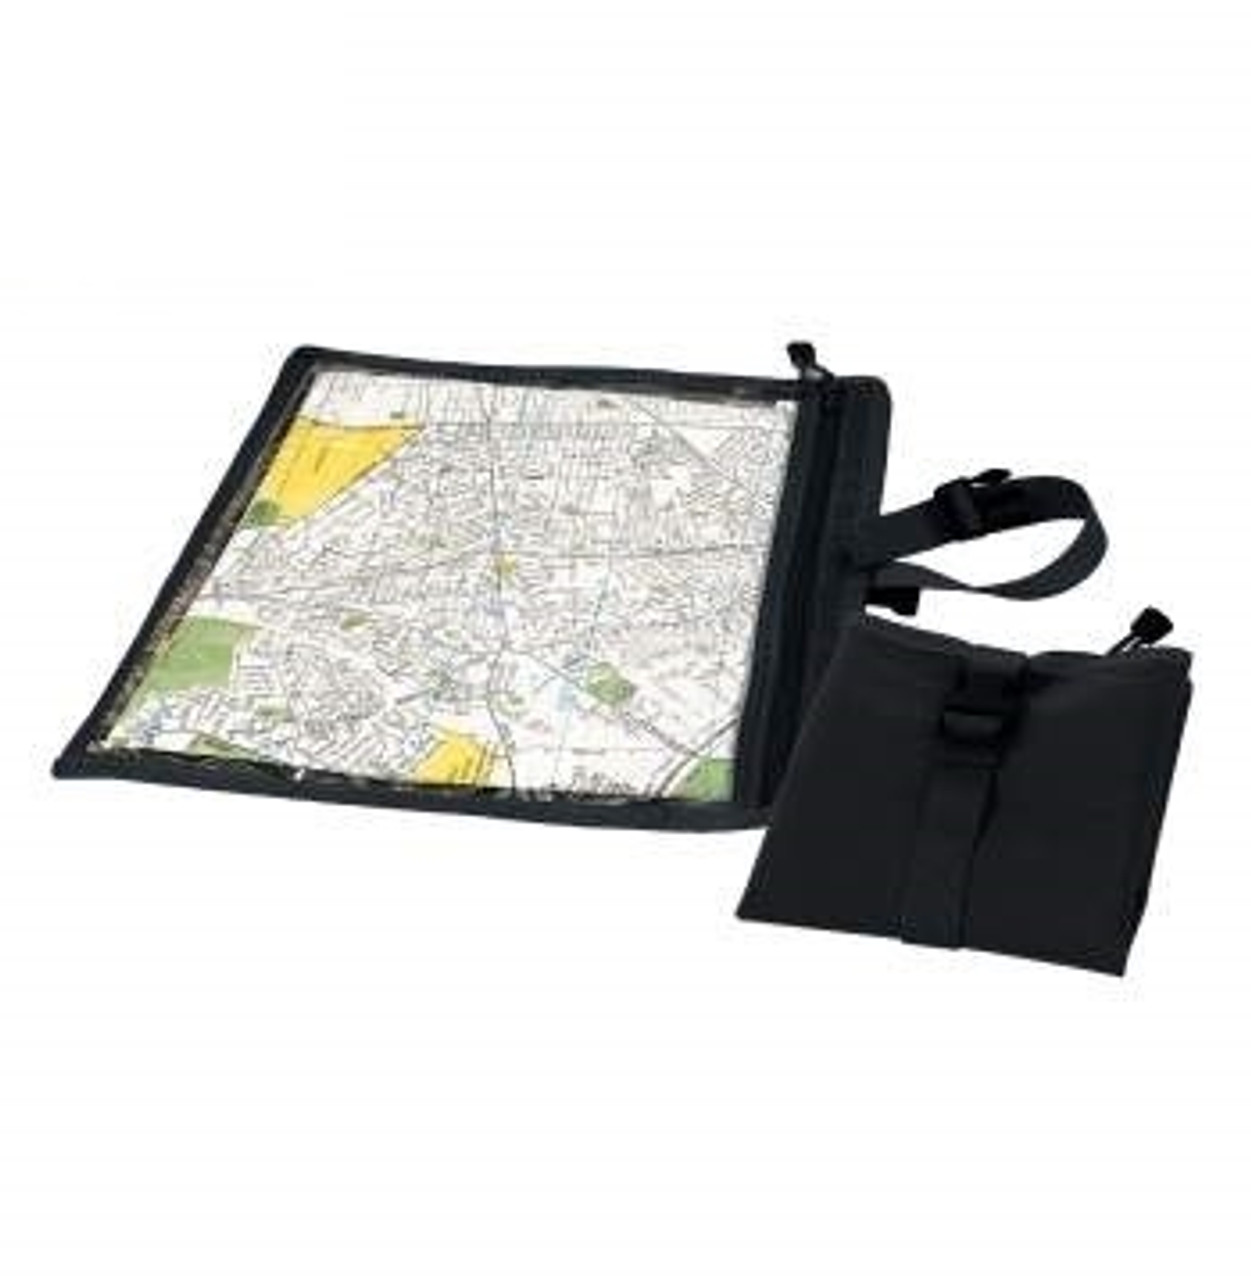 Map and Document Case - Black from Hessen Antique